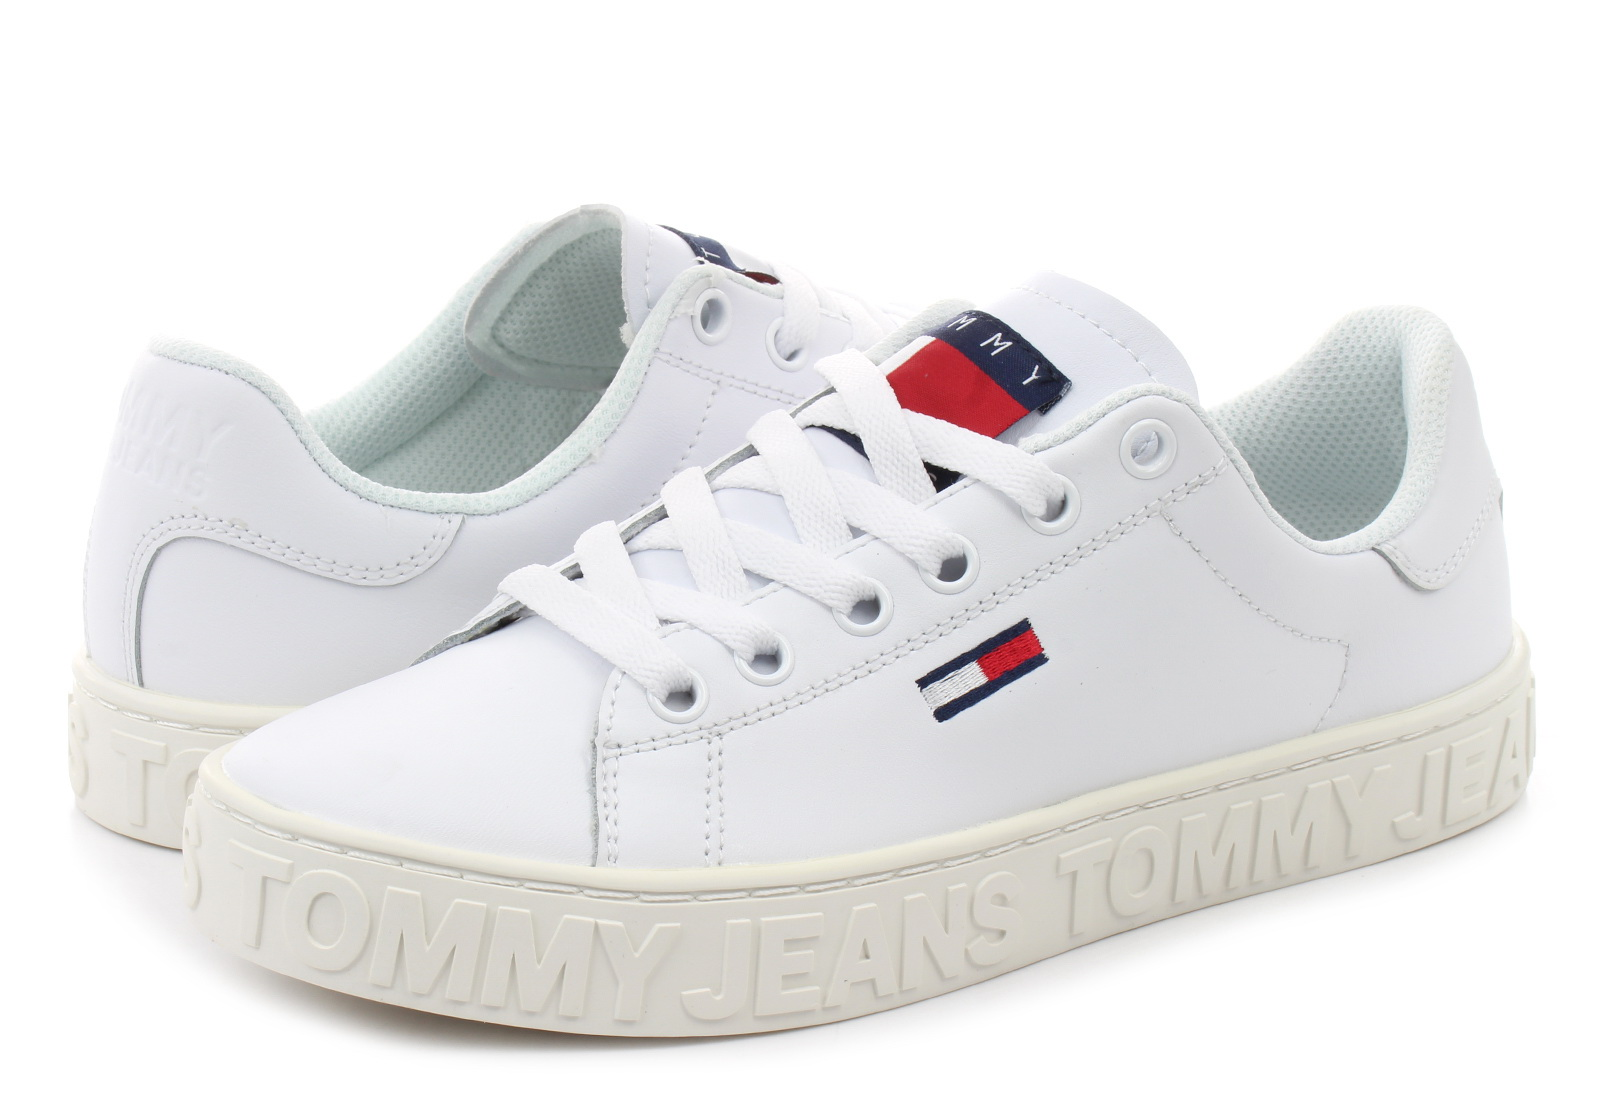 386ca8f7f6bbe Tommy Hilfiger Shoes - Jaz 1a - 19S-0401-100 - Online shop for ...